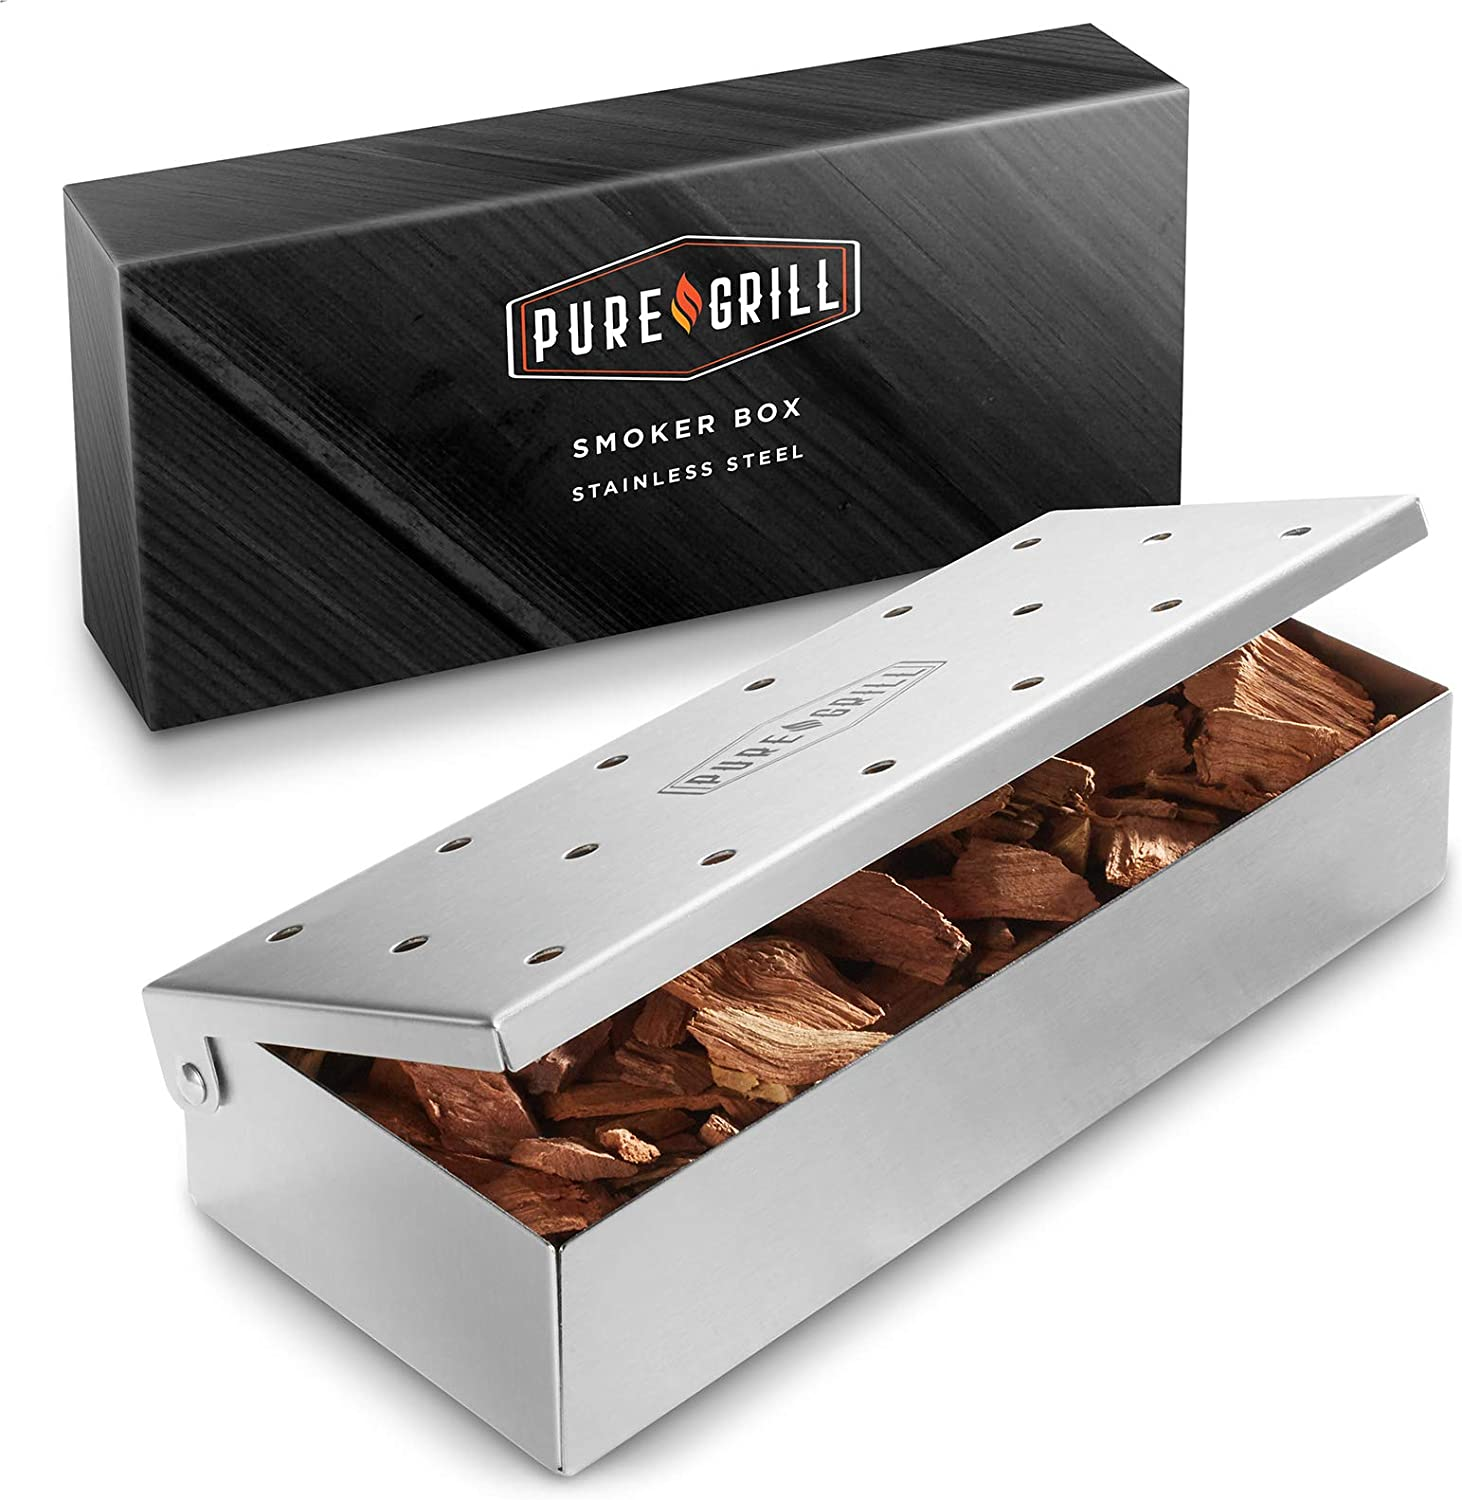 Pure Grill BBQ Smoker Box - Heavy DutyStainless Steelwith Hinged Lid for Wood Chips - BarbecueMeat Smoking for Charcoal and Gas Grills: Garden & Outdoor